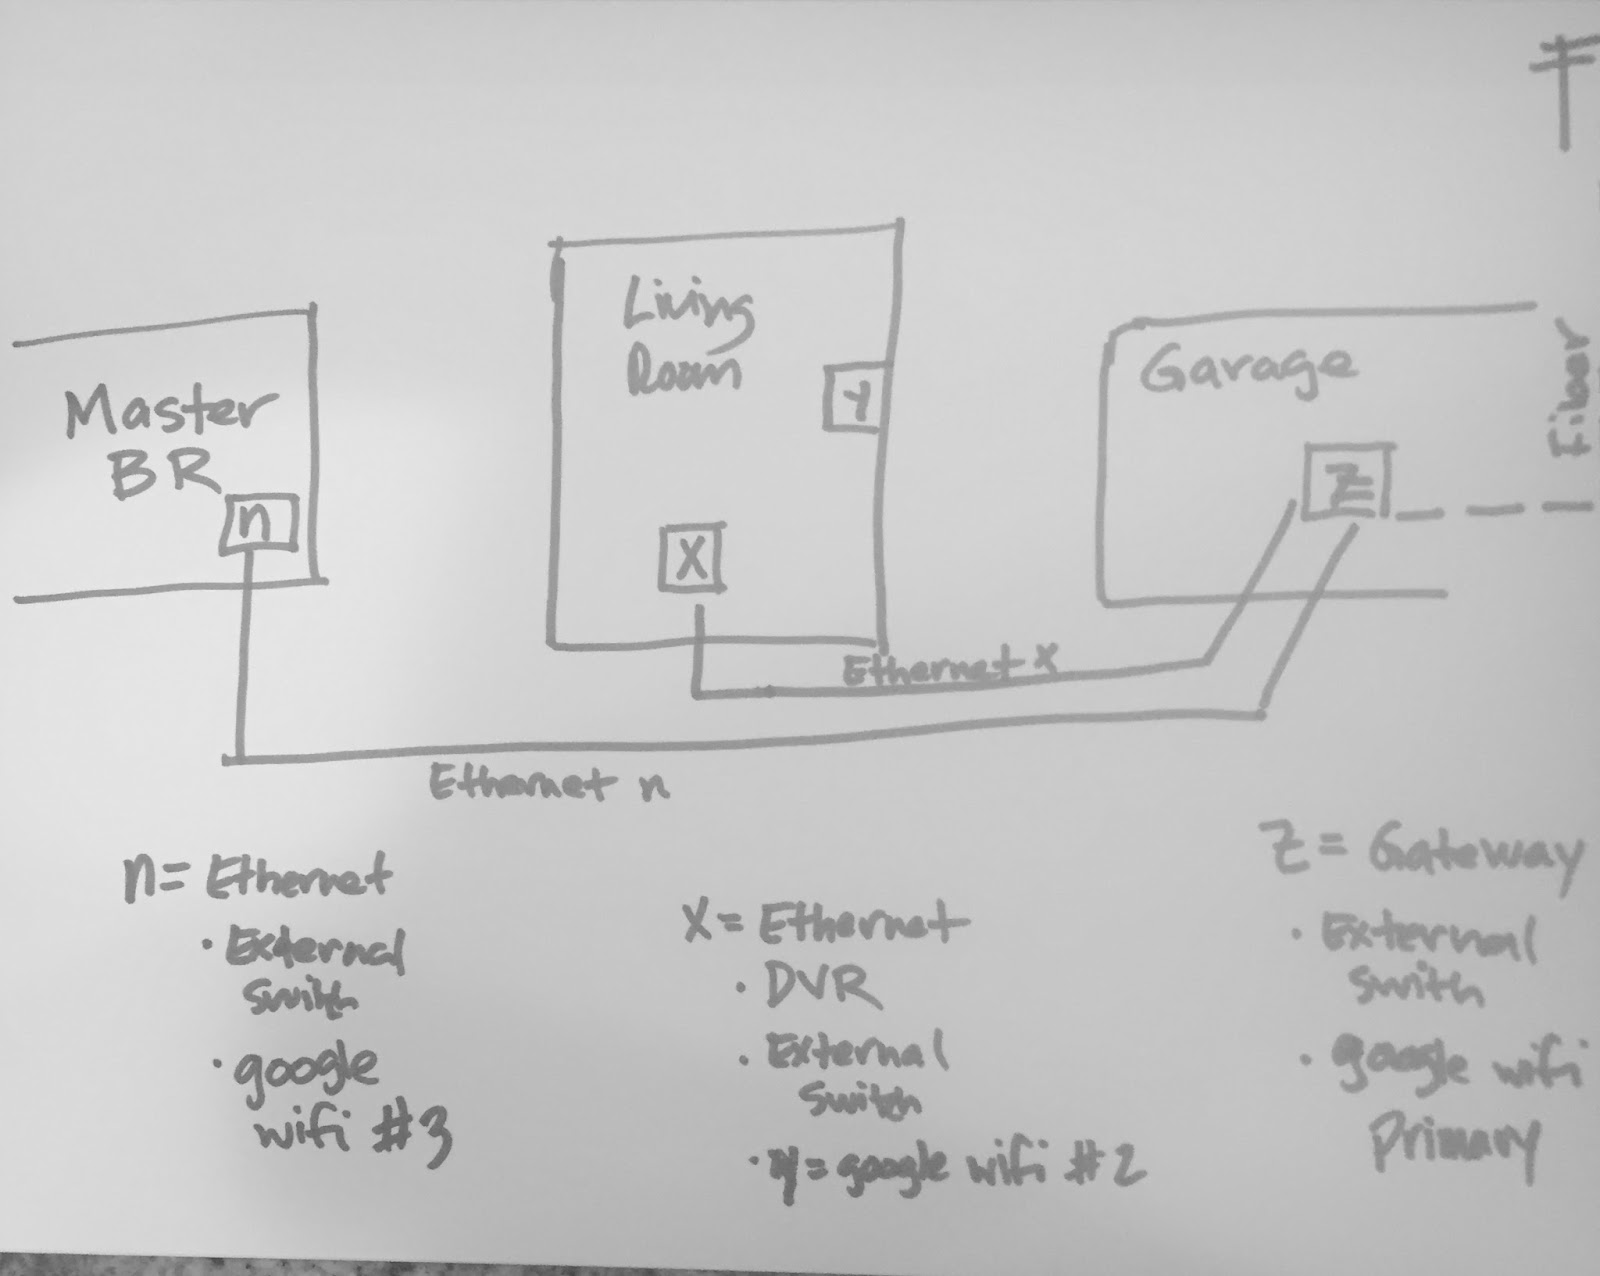 AT&T Uverse DVR, Gigabit Fiber, Coverage in a long house ... on wifi connector, wifi block diagram, wifi antenna, wifi thermostat, wifi speakers diagram, wifi clock,